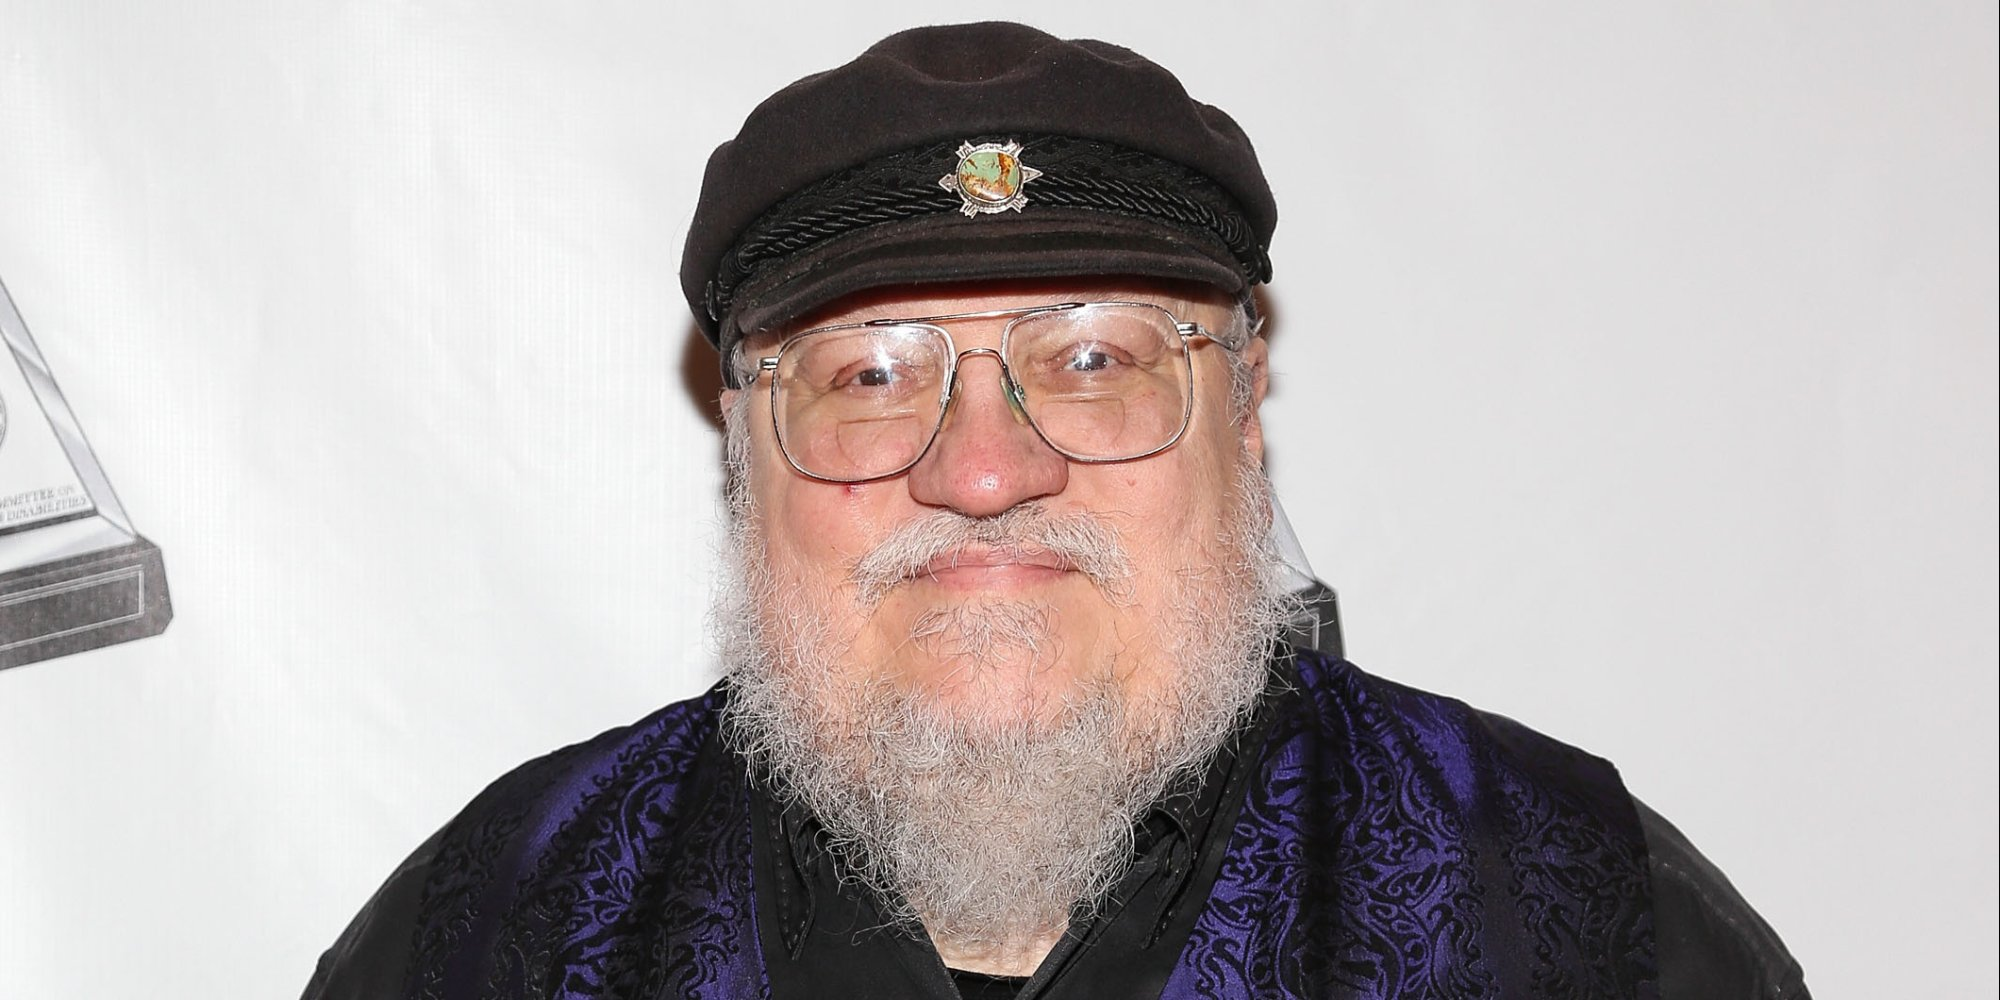 Things you didn't know about George R.R. Martin